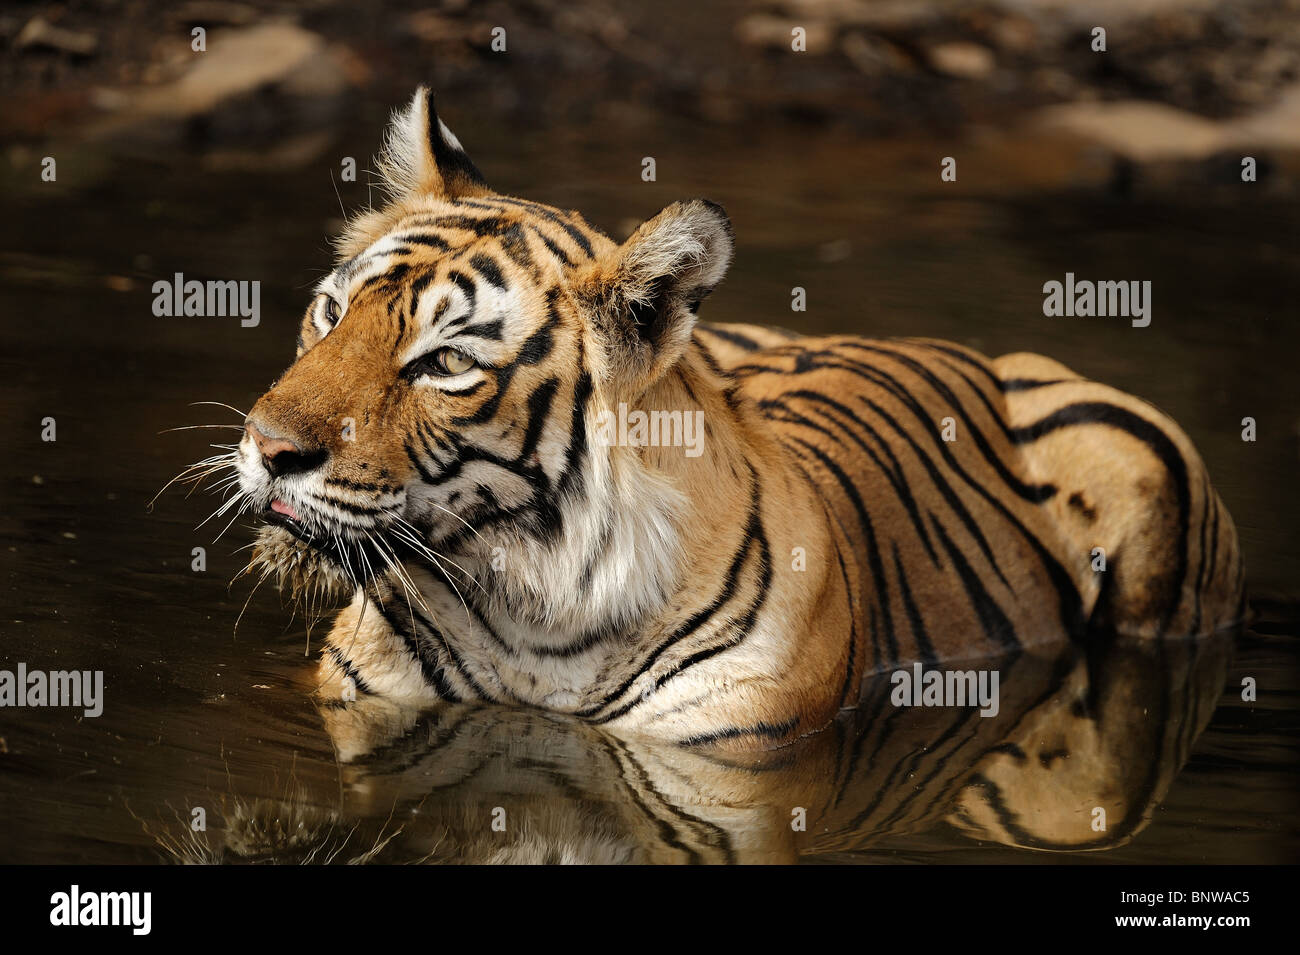 Bengal Tiger (Panthera tigris) relaxing in a waterhole, Ranthambore, India Stock Photo